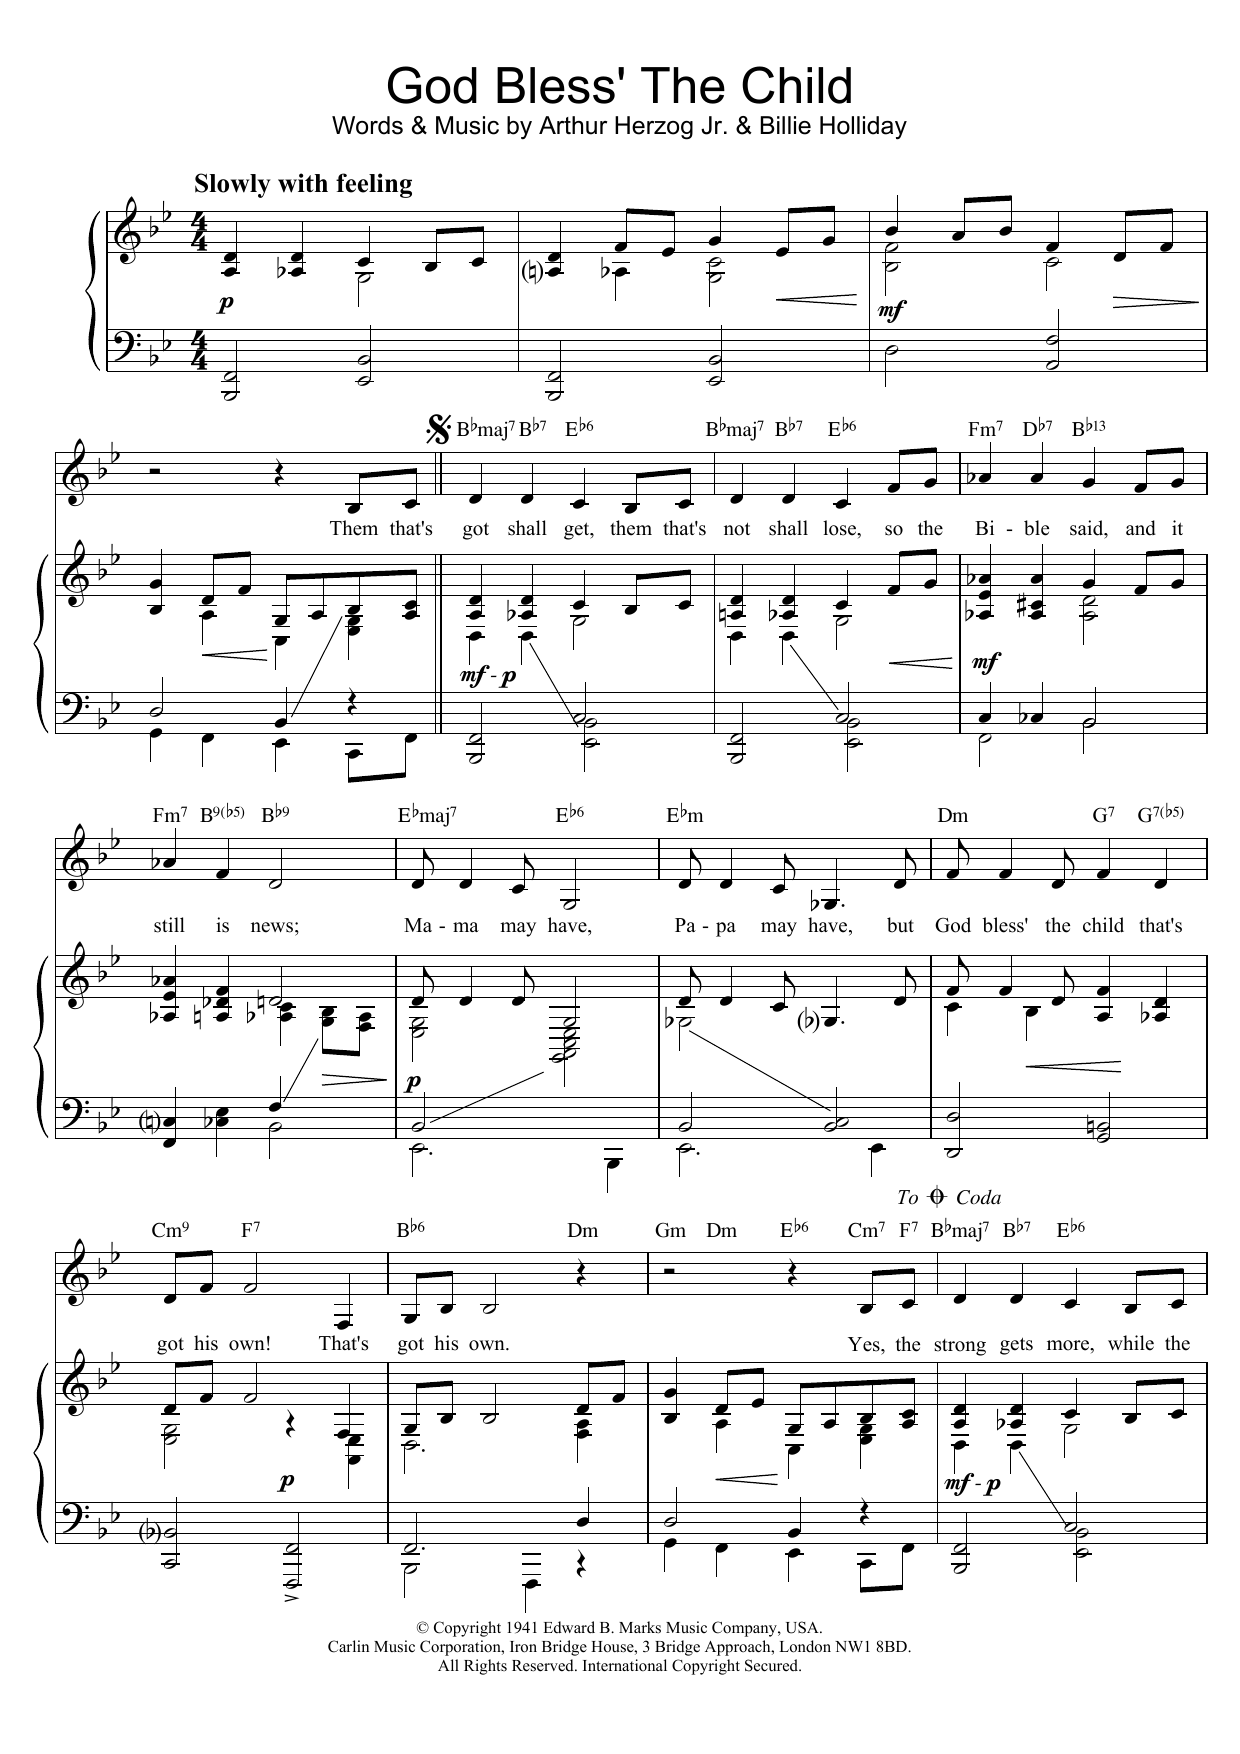 Billie Holiday God Bless' The Child sheet music preview music notes and score for Piano, Vocal & Guitar (Right-Hand Melody) including 3 page(s)